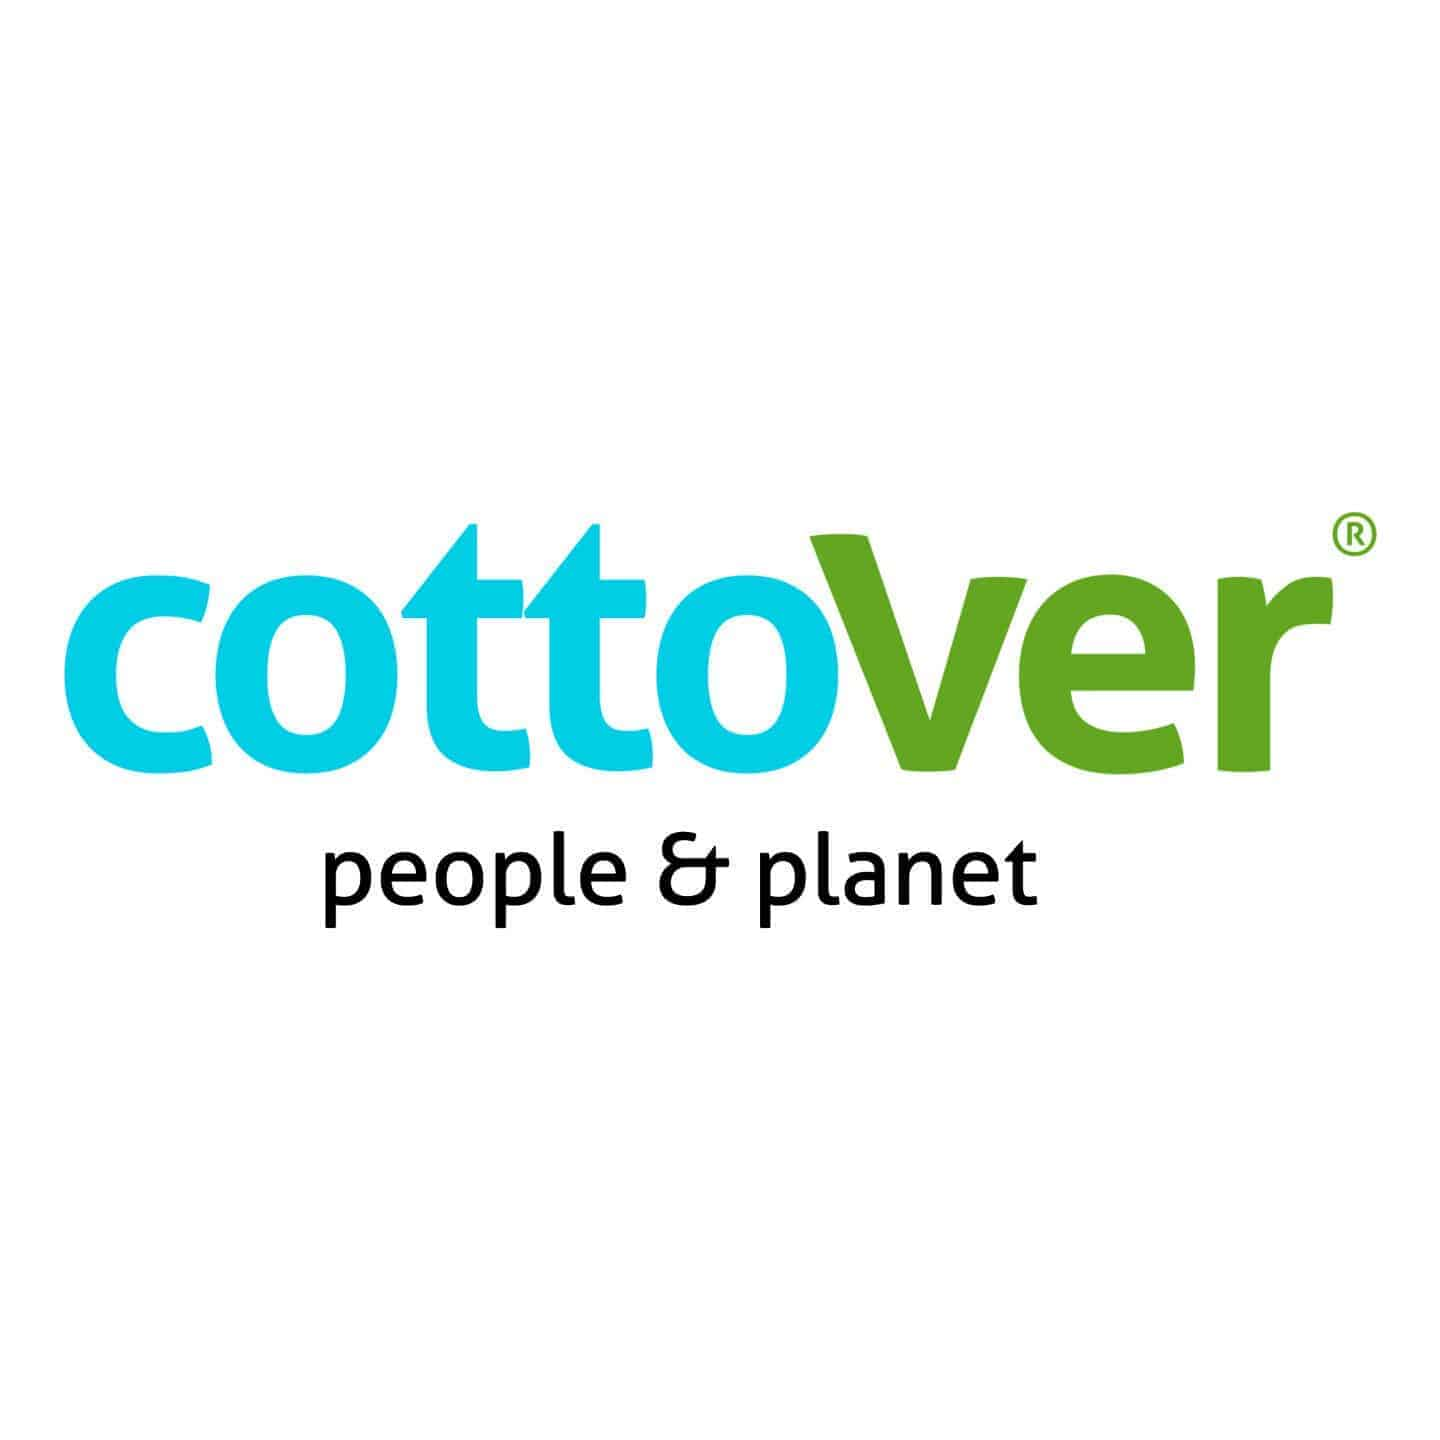 cottover_logo-01